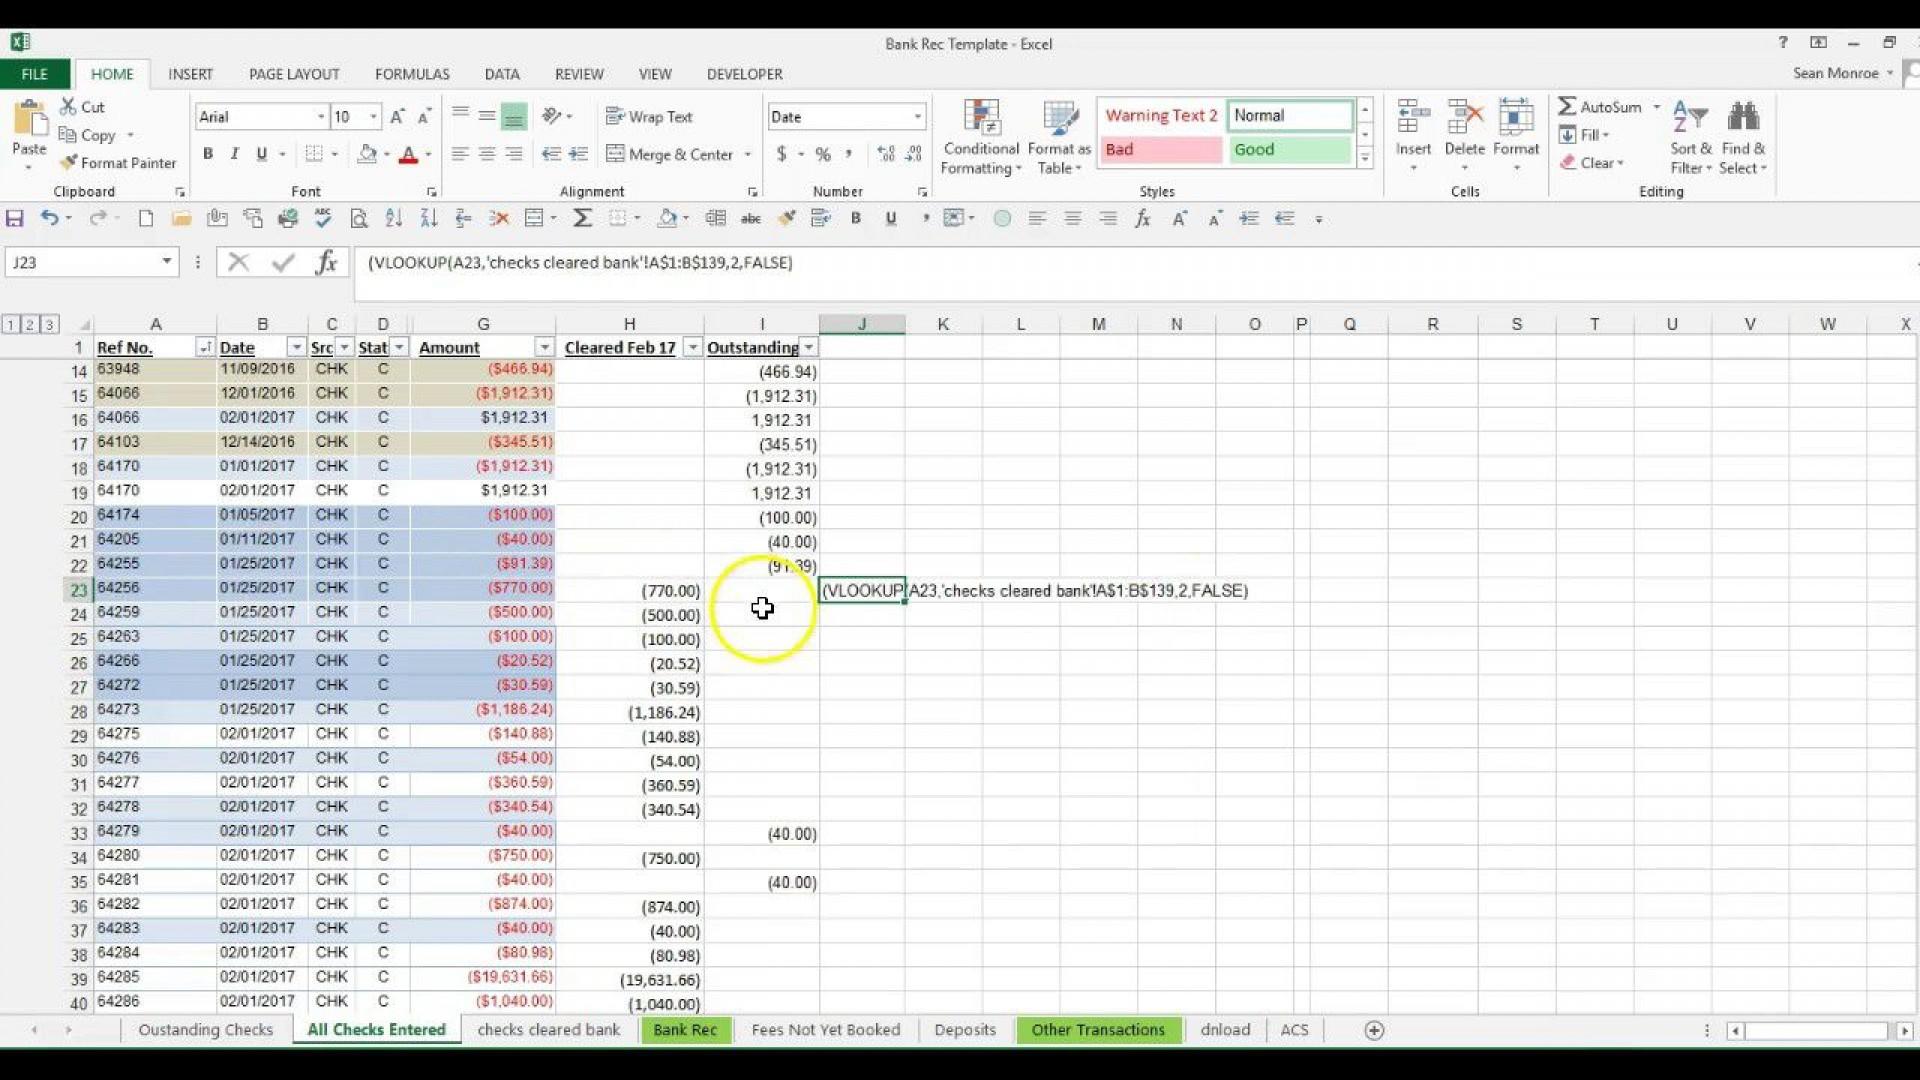 008 Amazing Bank Reconciliation Excel Template High Definition  Statement Format Free Download Monthly1920